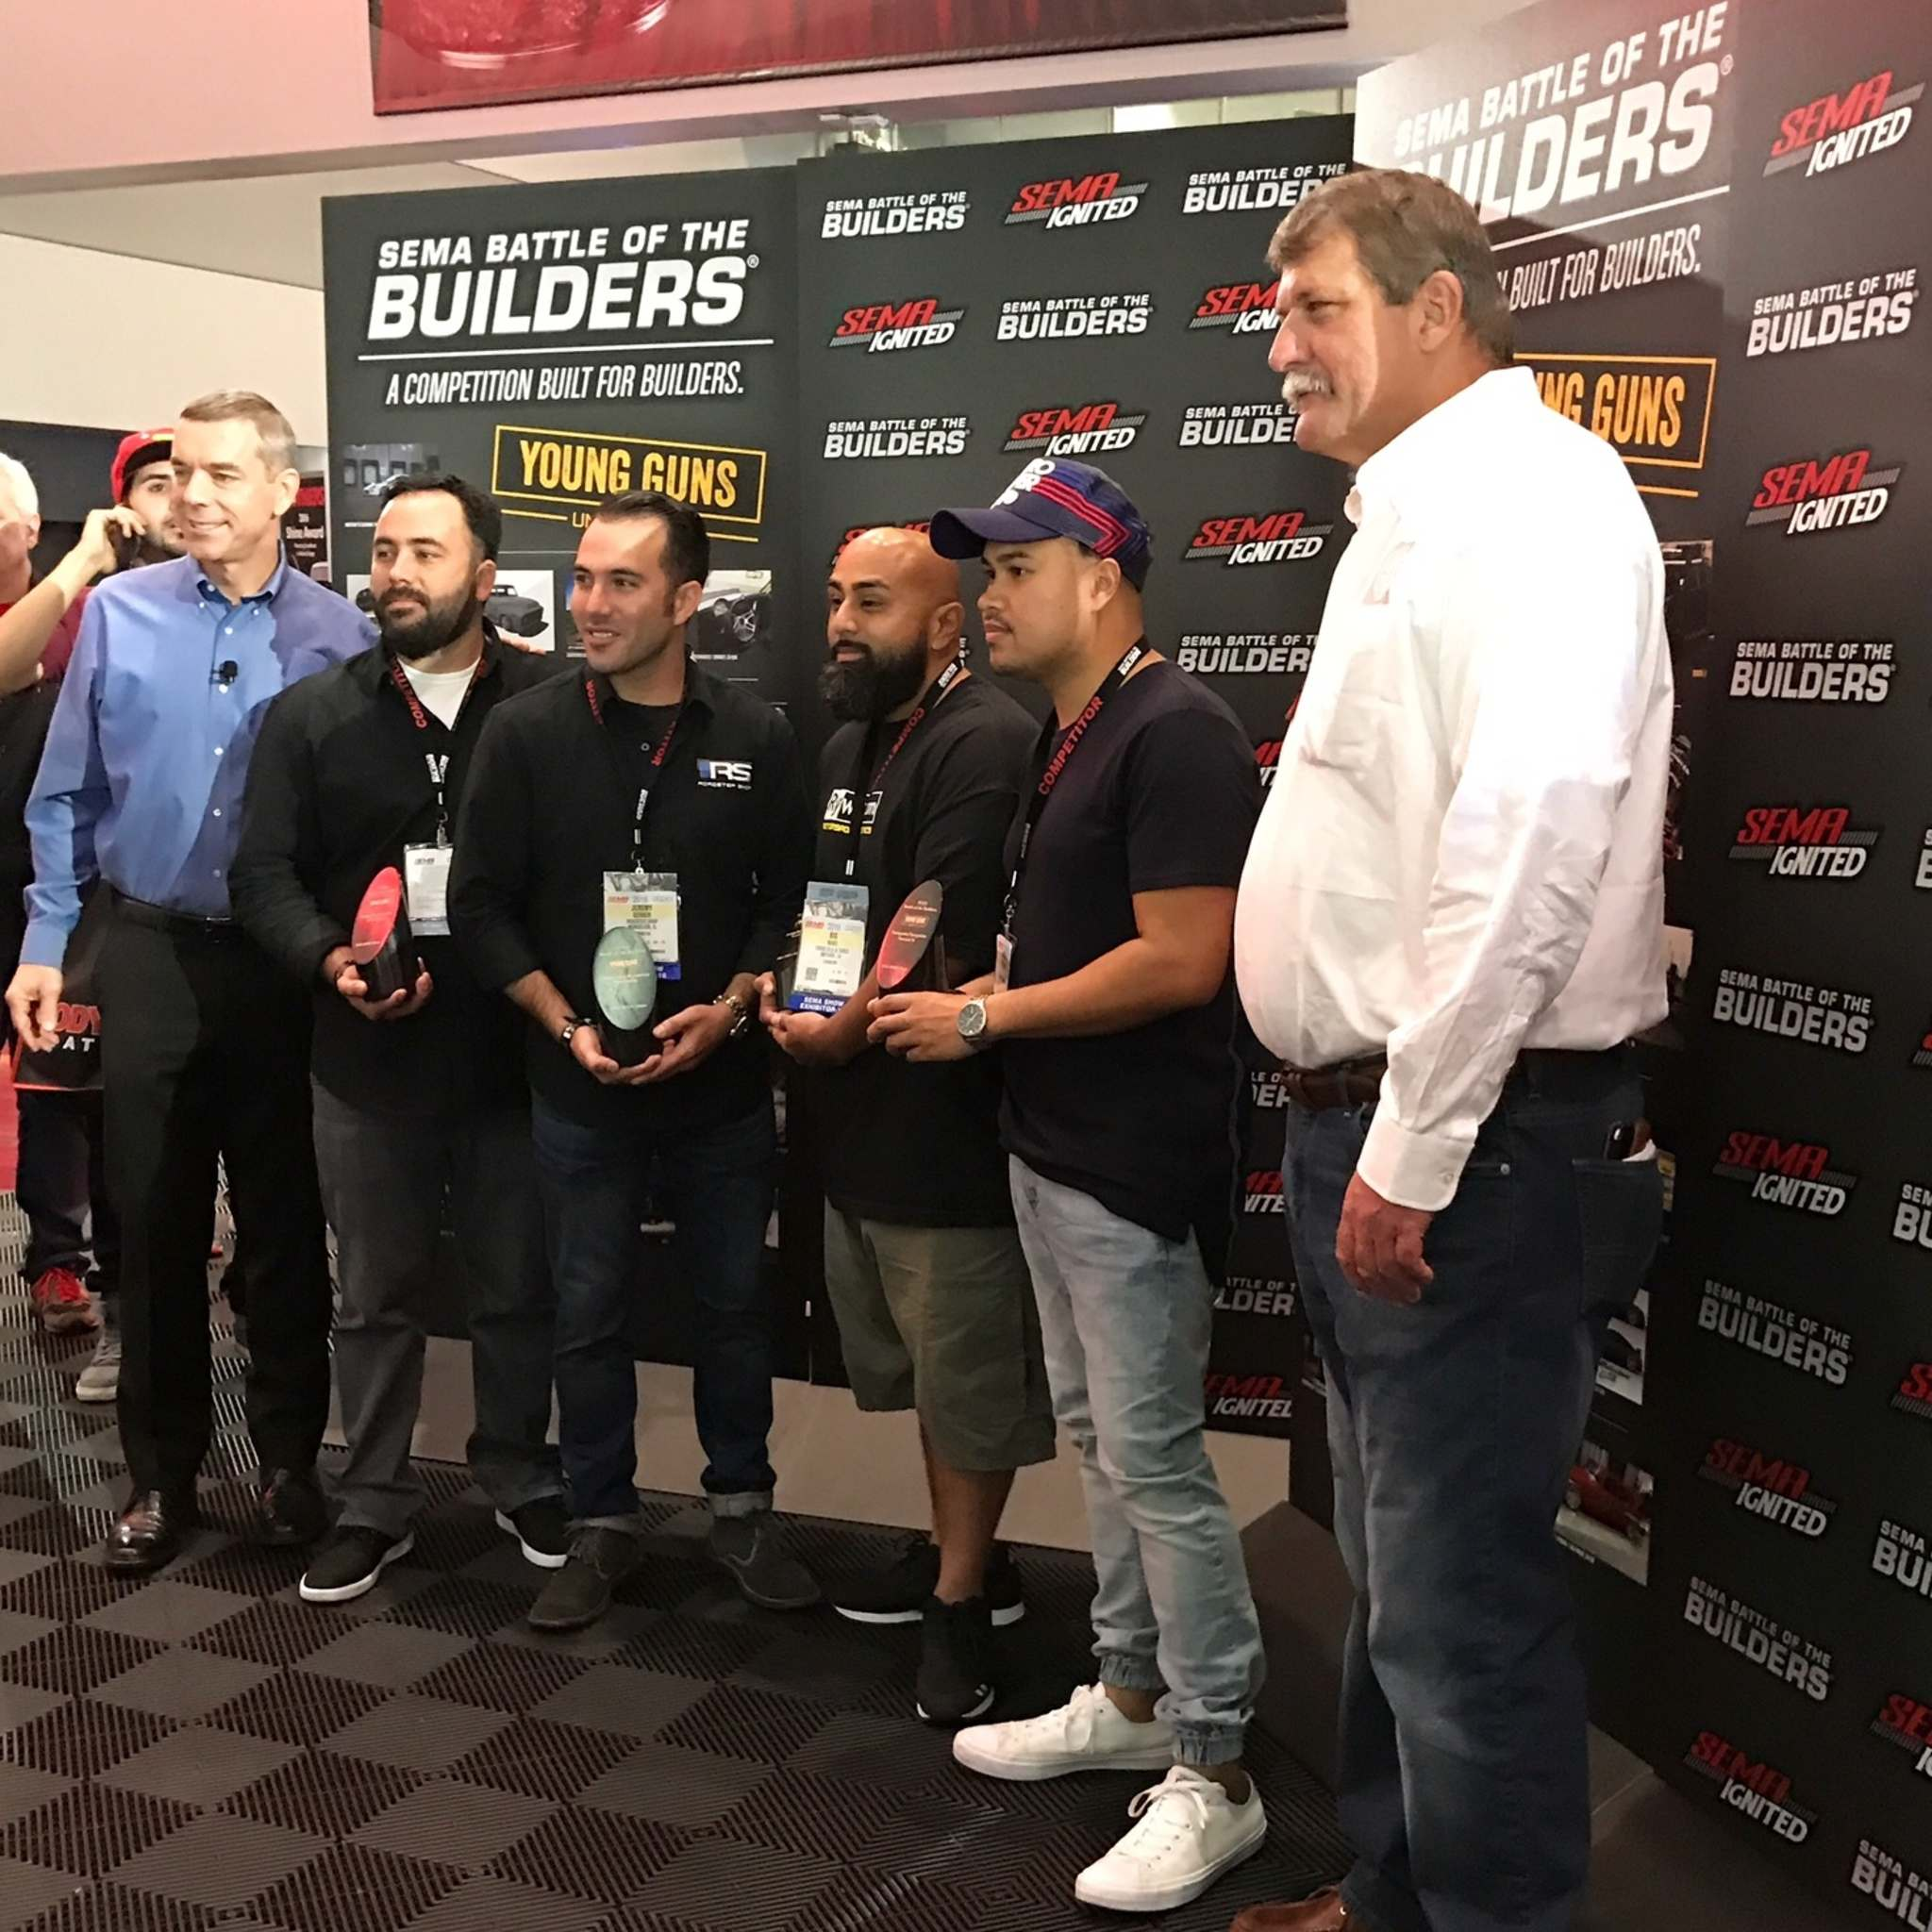 SUPPLIEDAnthony De Guzman (in blue hat) was the only Canadian to win an award at SEMA this year.